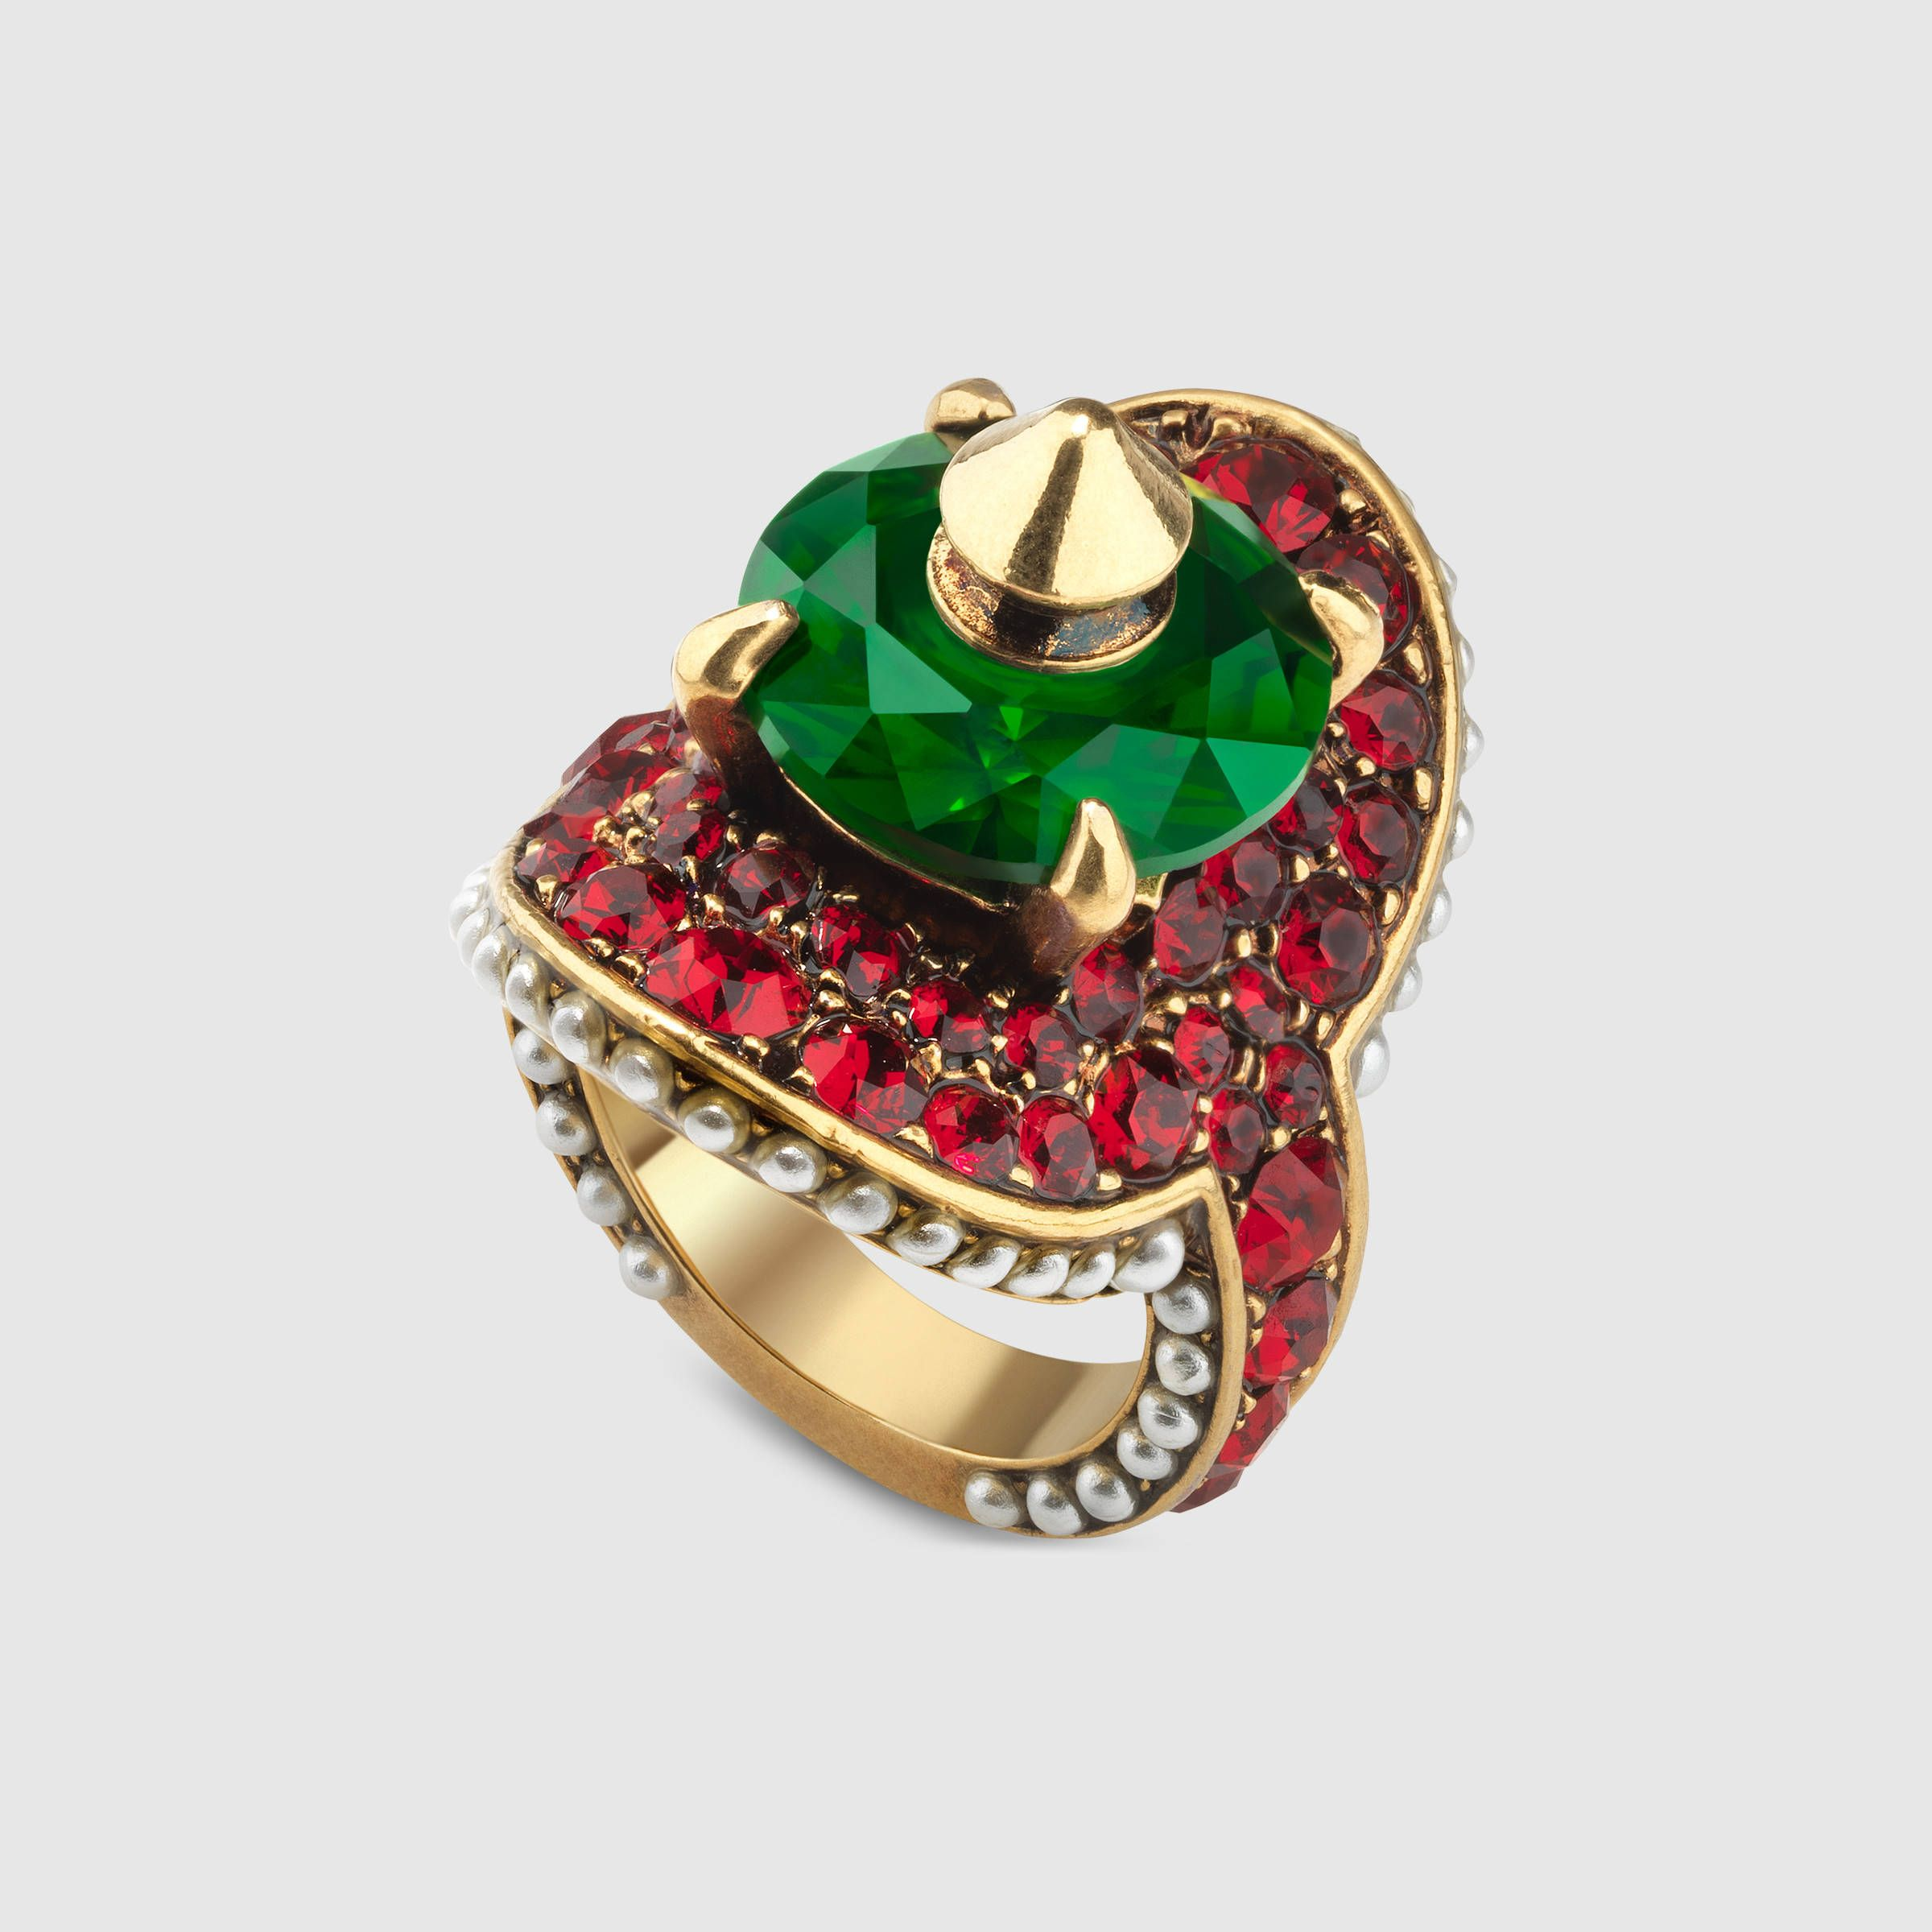 Gucci Ring With Stud And Crystals Detail 2 Rings Jewelry Fashion Gucci Jewelry Gold Rings Fashion